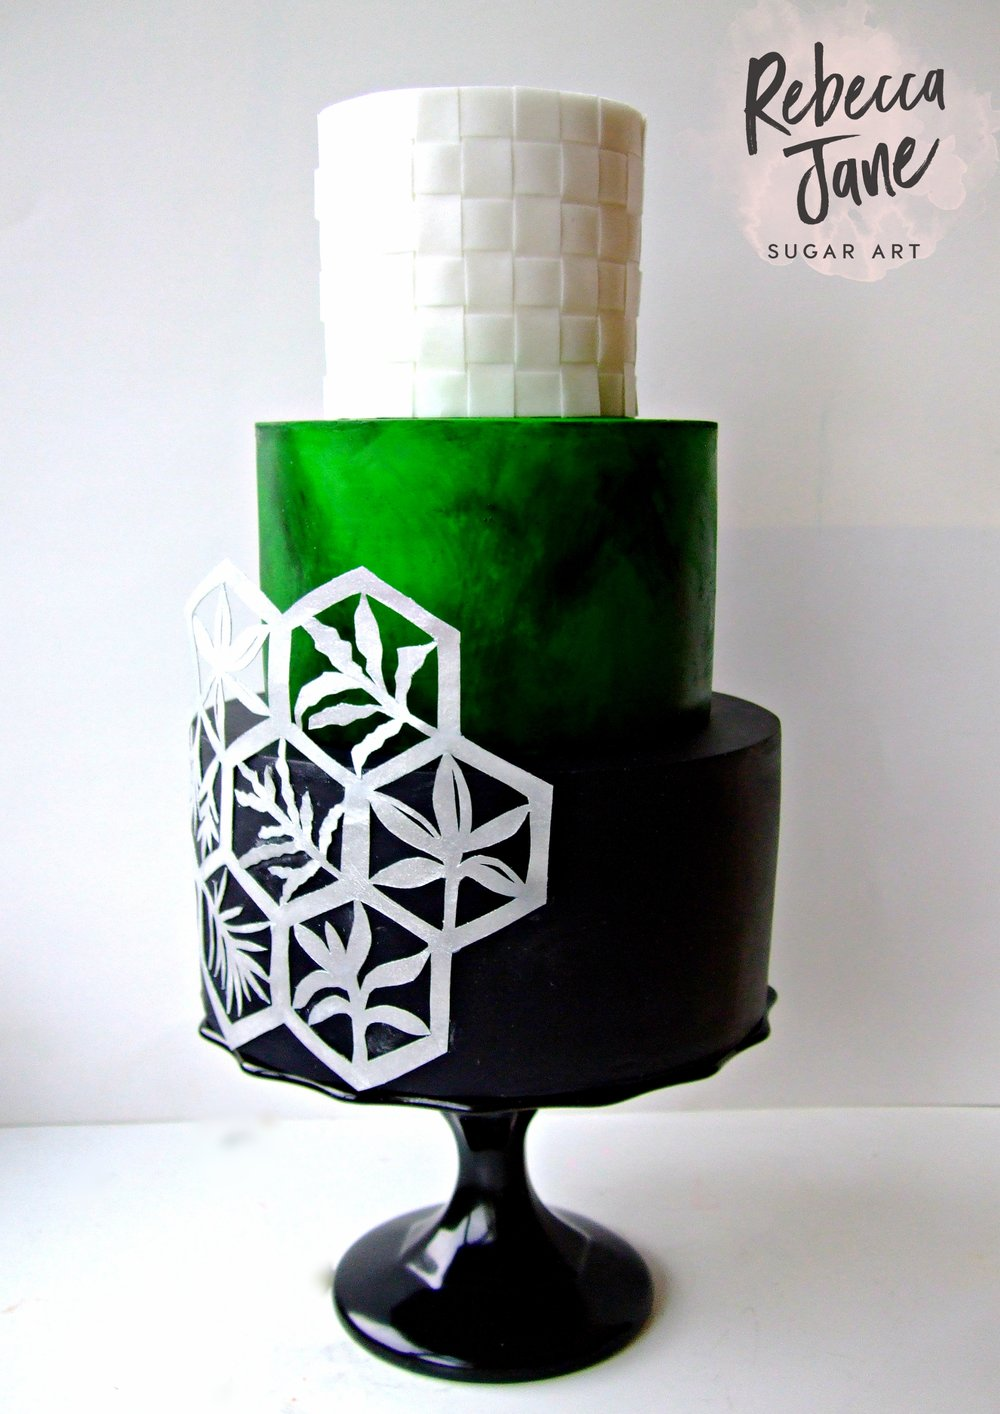 Rebecca Jane Sugar Art - New Zealand Inspired Geometric Wedding Cake with wafer paper and watercolour details